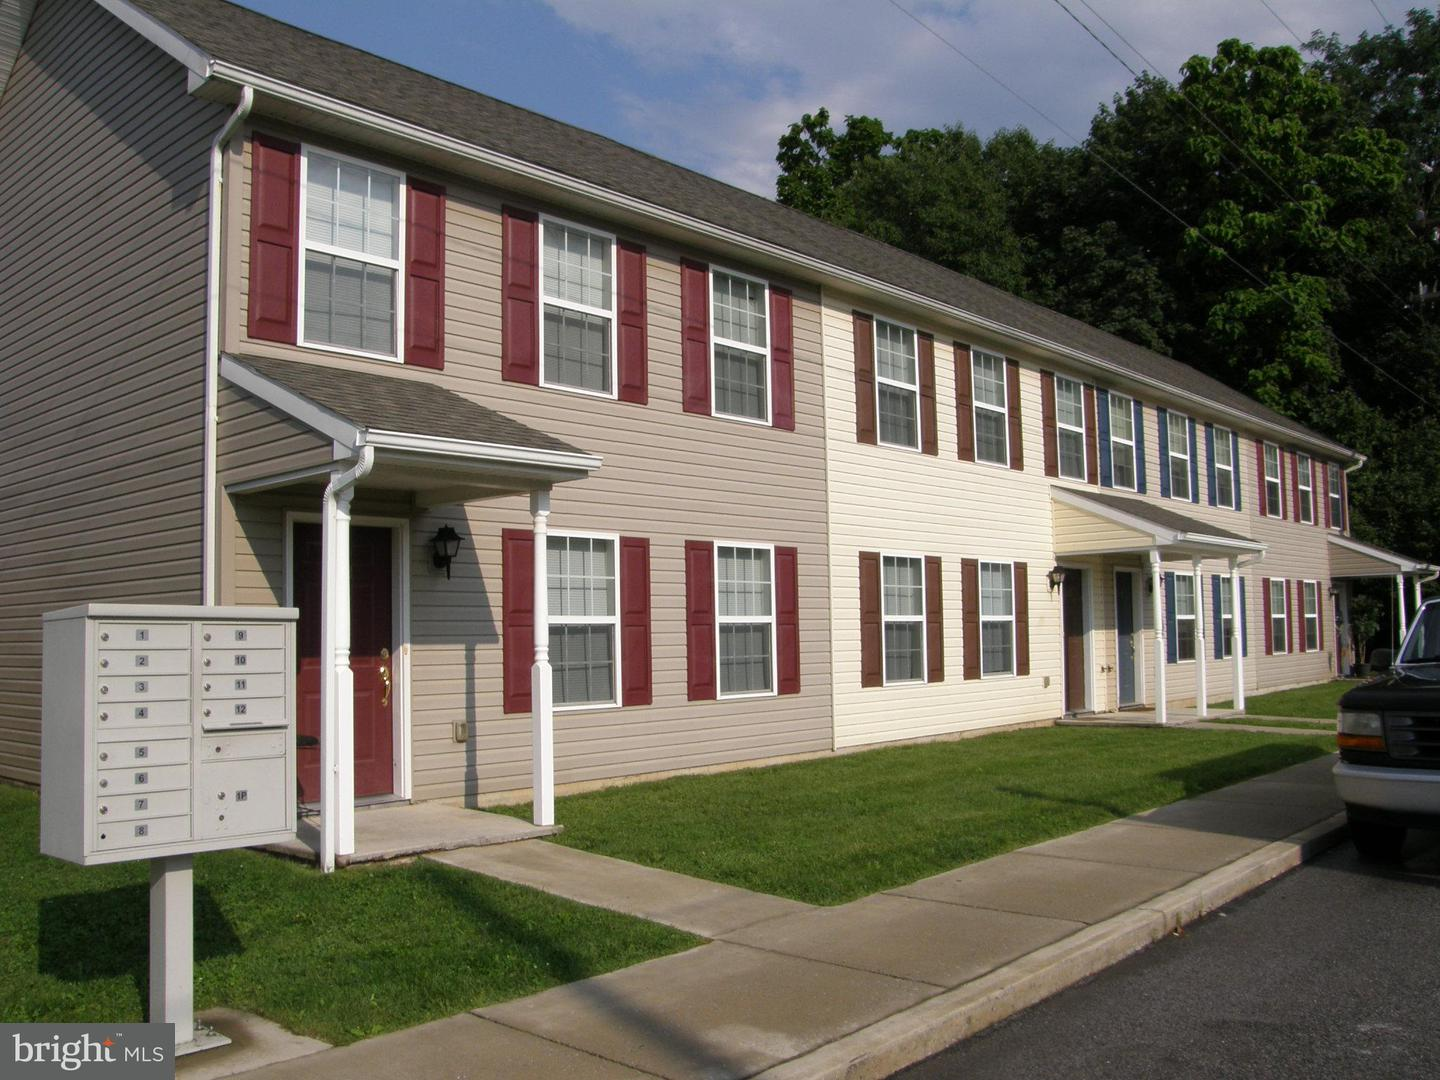 Commercial for Sale at 121-147 Seneca - Earl St S Shippensburg, Pennsylvania 17257 United States